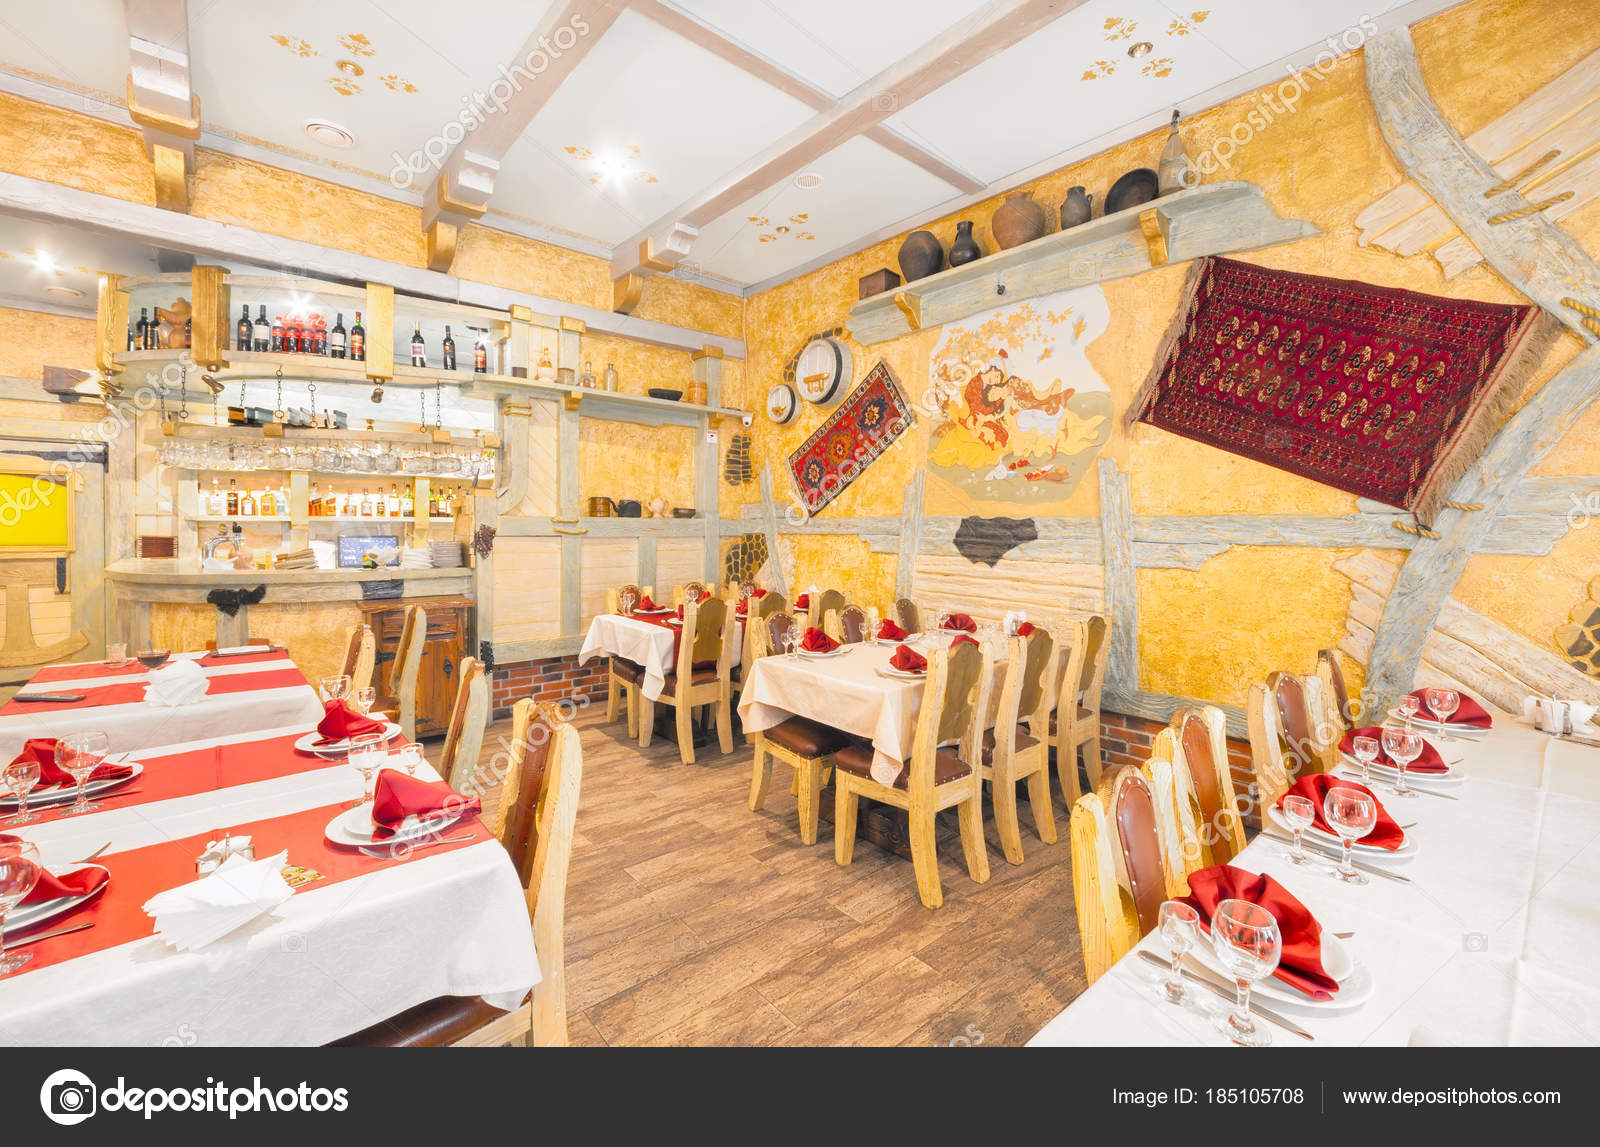 Moscow August 2014 Interior Of The Restaurant Rio Grande Hall Of Yellow Color Decorated In A Farmer S Style With Wooden Furniture Stock Editorial Photo C Saoirse2010 185105708